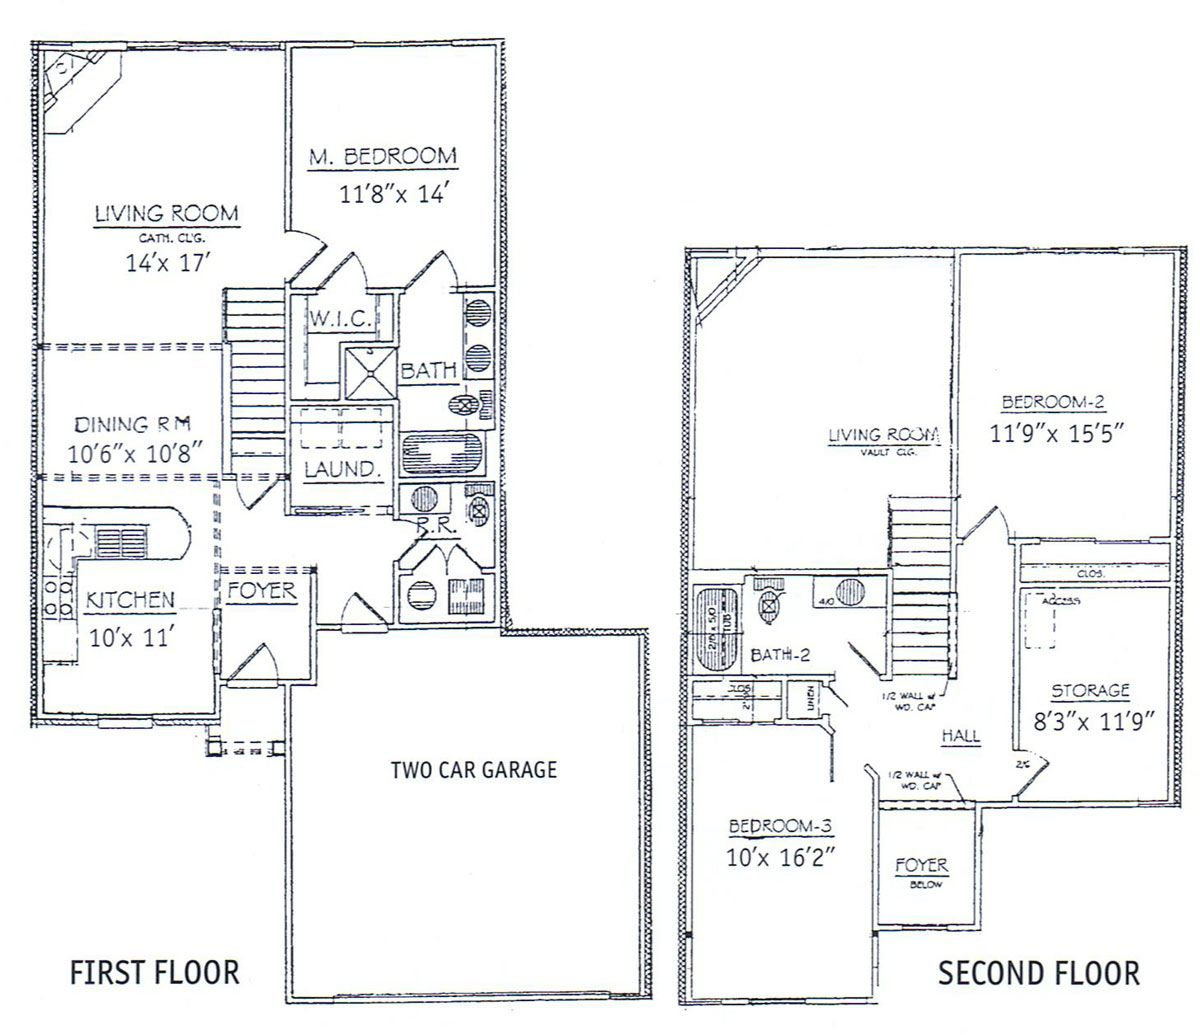 3 bedrooms floor plans 2 story bdrm basement the two Two story house floor plans